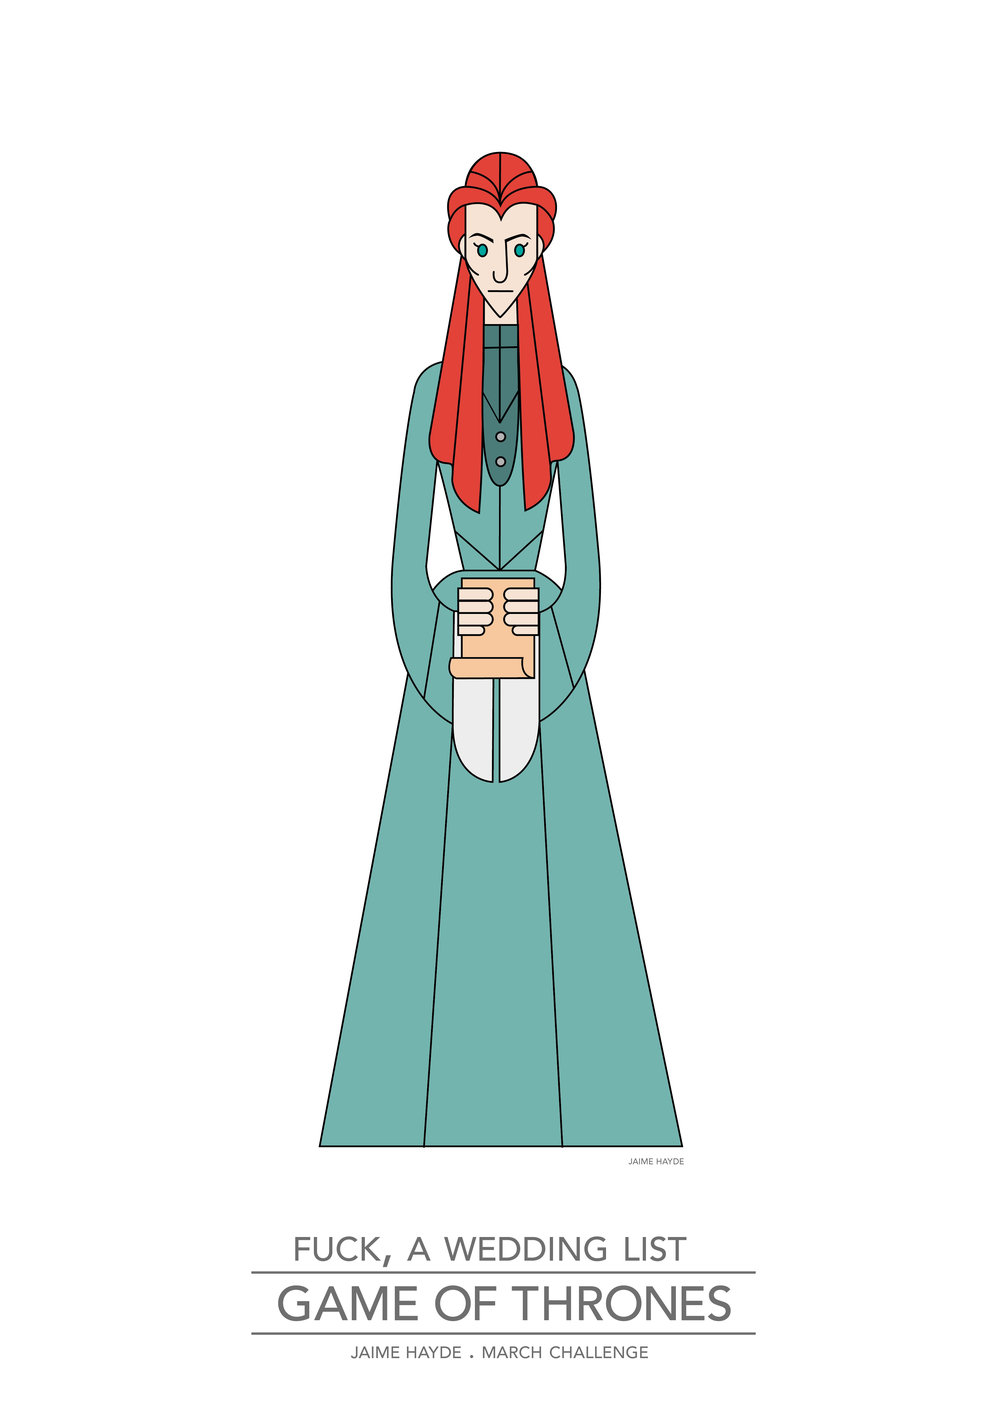 Game-of-thrones-Juego-de-tronos-lady_illustration.jpg